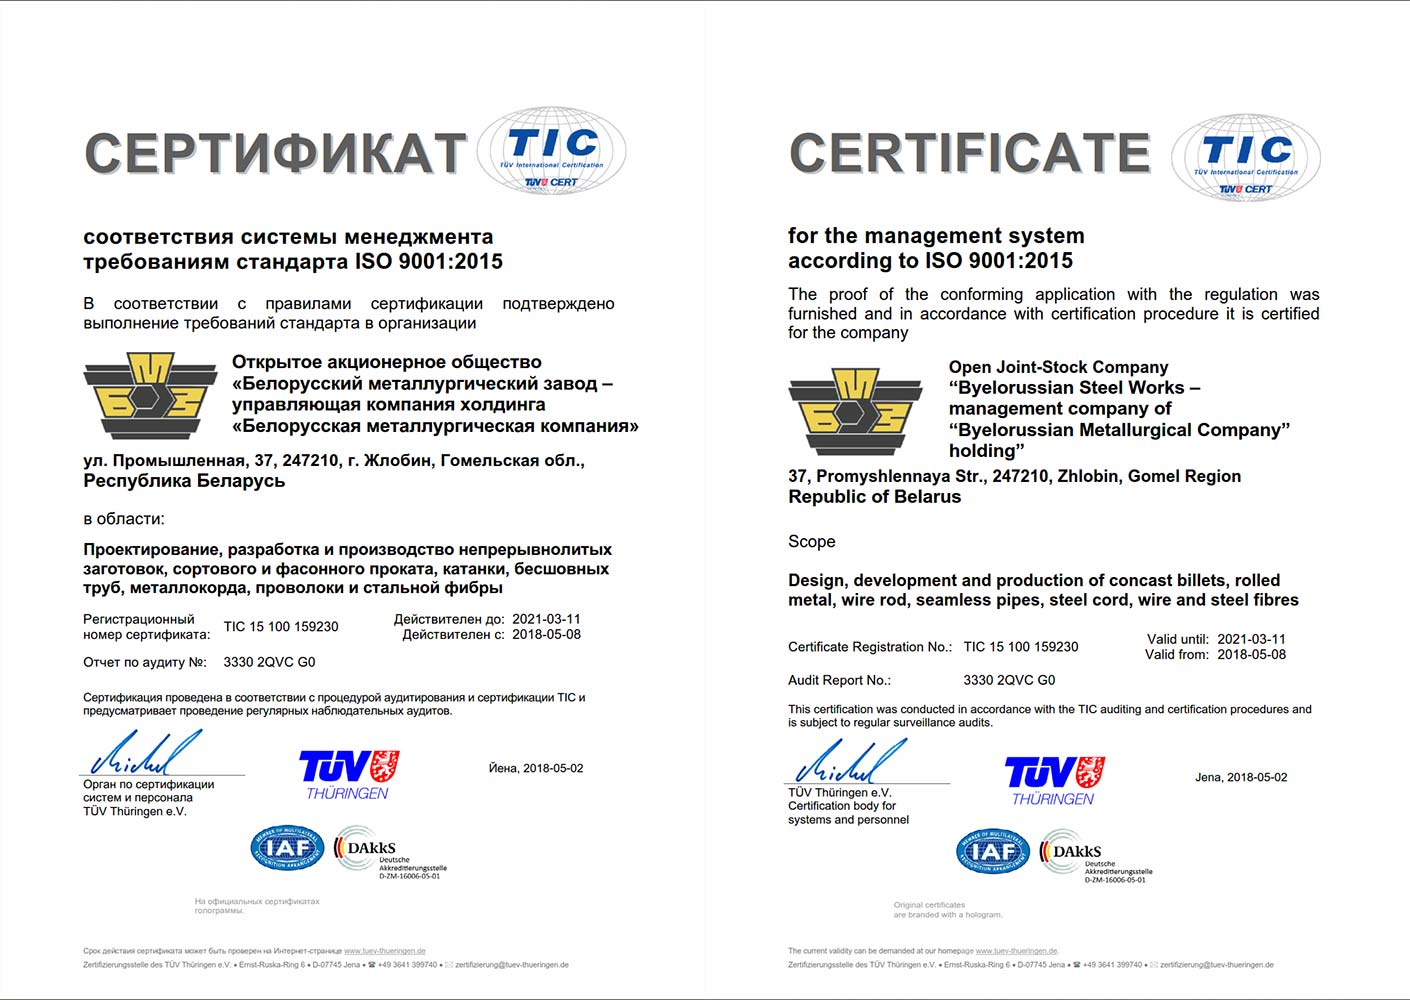 Certificate № TIC 15 100 159230 (TUV Thuringen e.V.) of QMS conformity with the requirements of international standard ISO 9001:2015 to design, develop and produce concast billet, rolled product, wire rod, seamless pipes, steel cord, wire and steel fiber